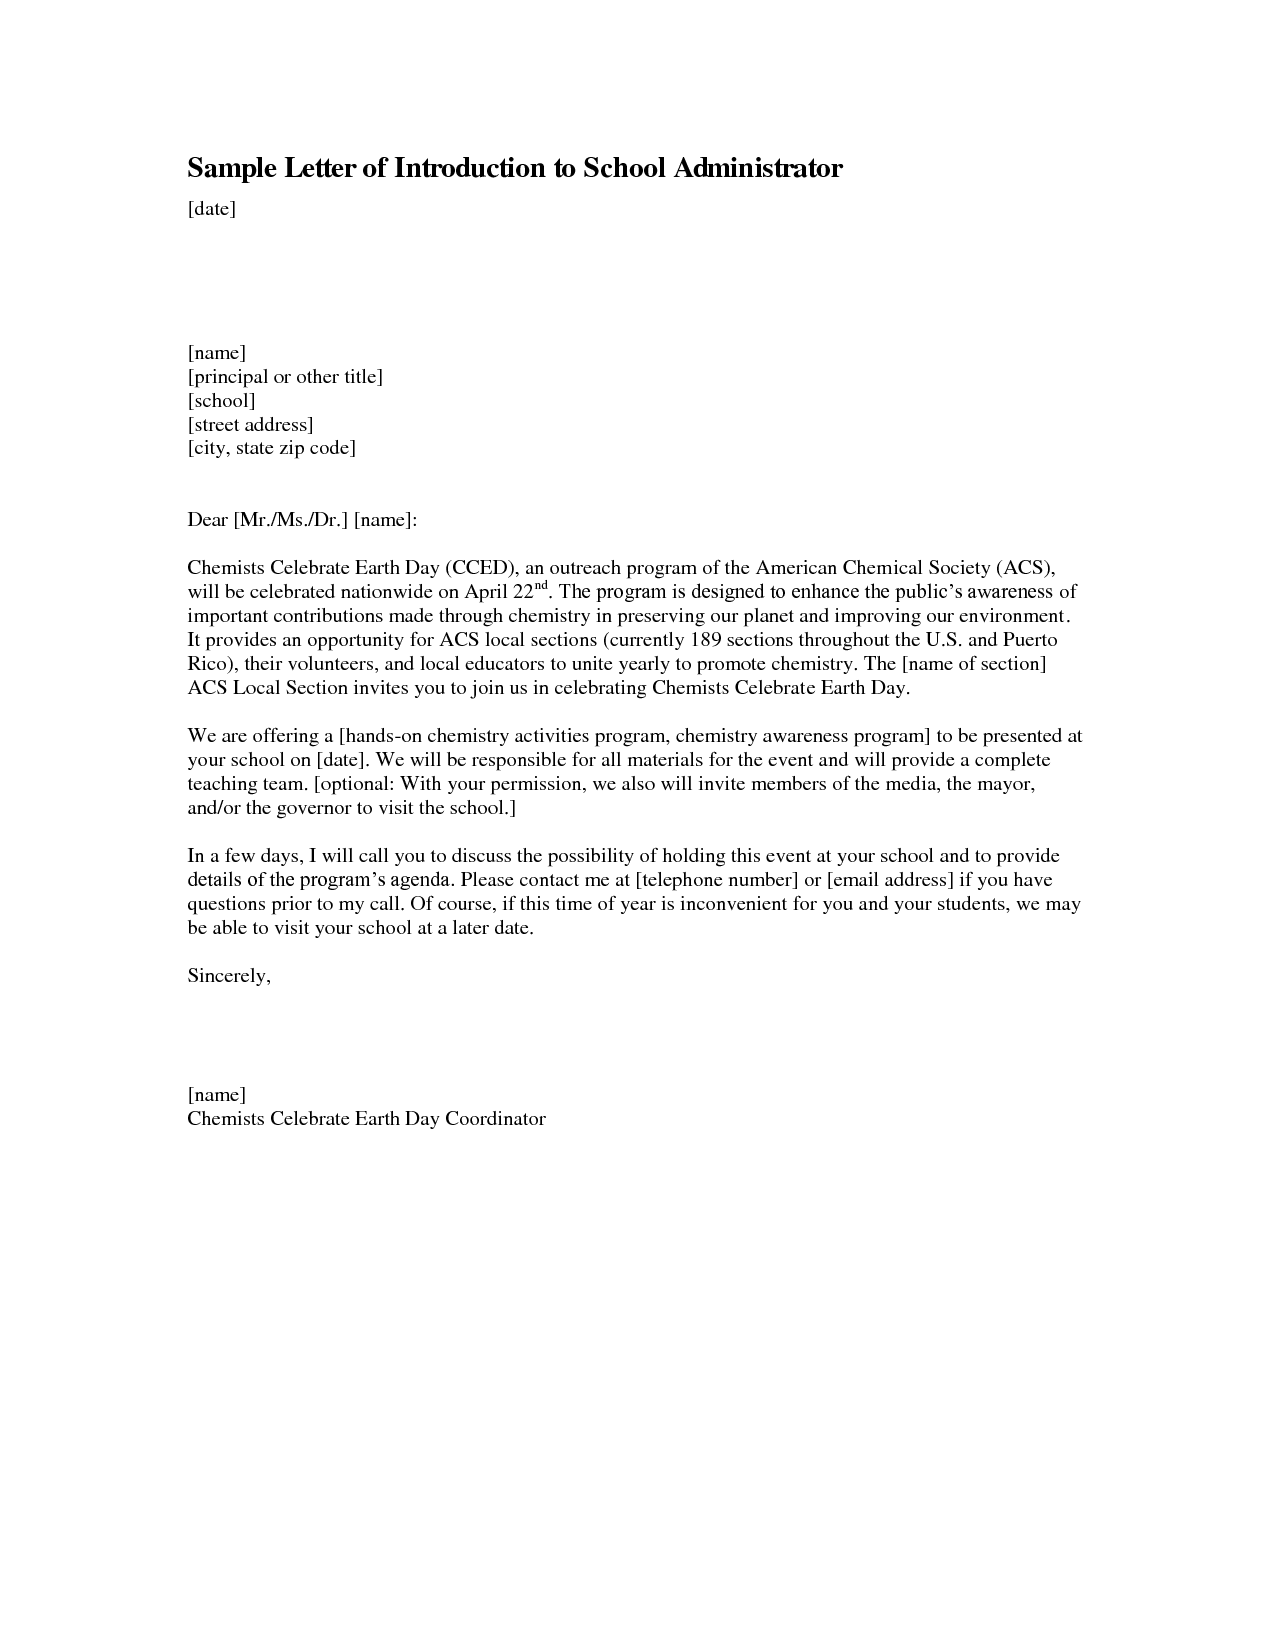 Elegant Cover Letter For School Receptionist